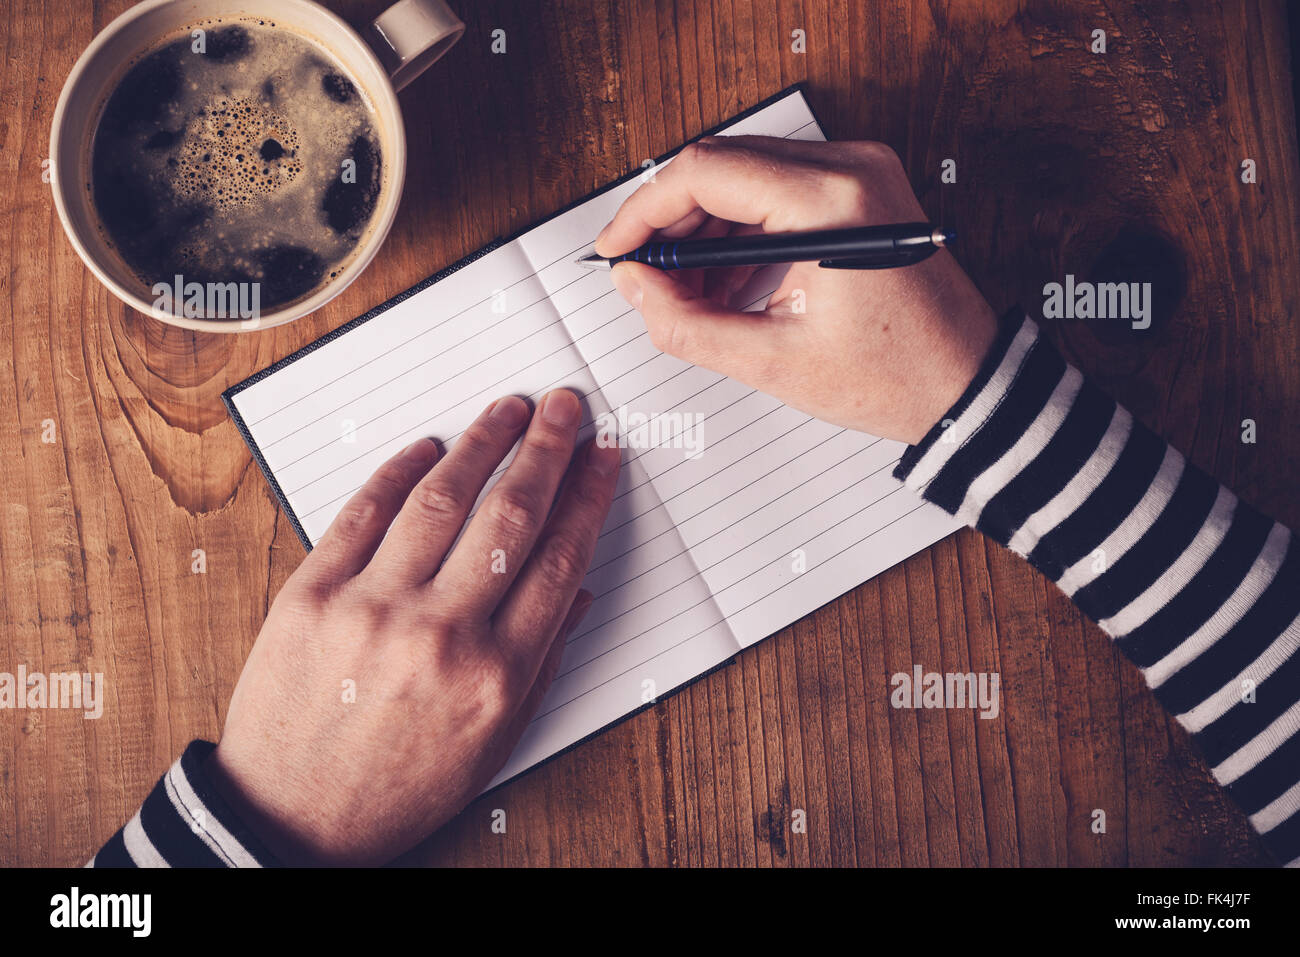 Woman drinking coffee and making a diary note, top view of female hands writing in notebook, retro toned image - Stock Image